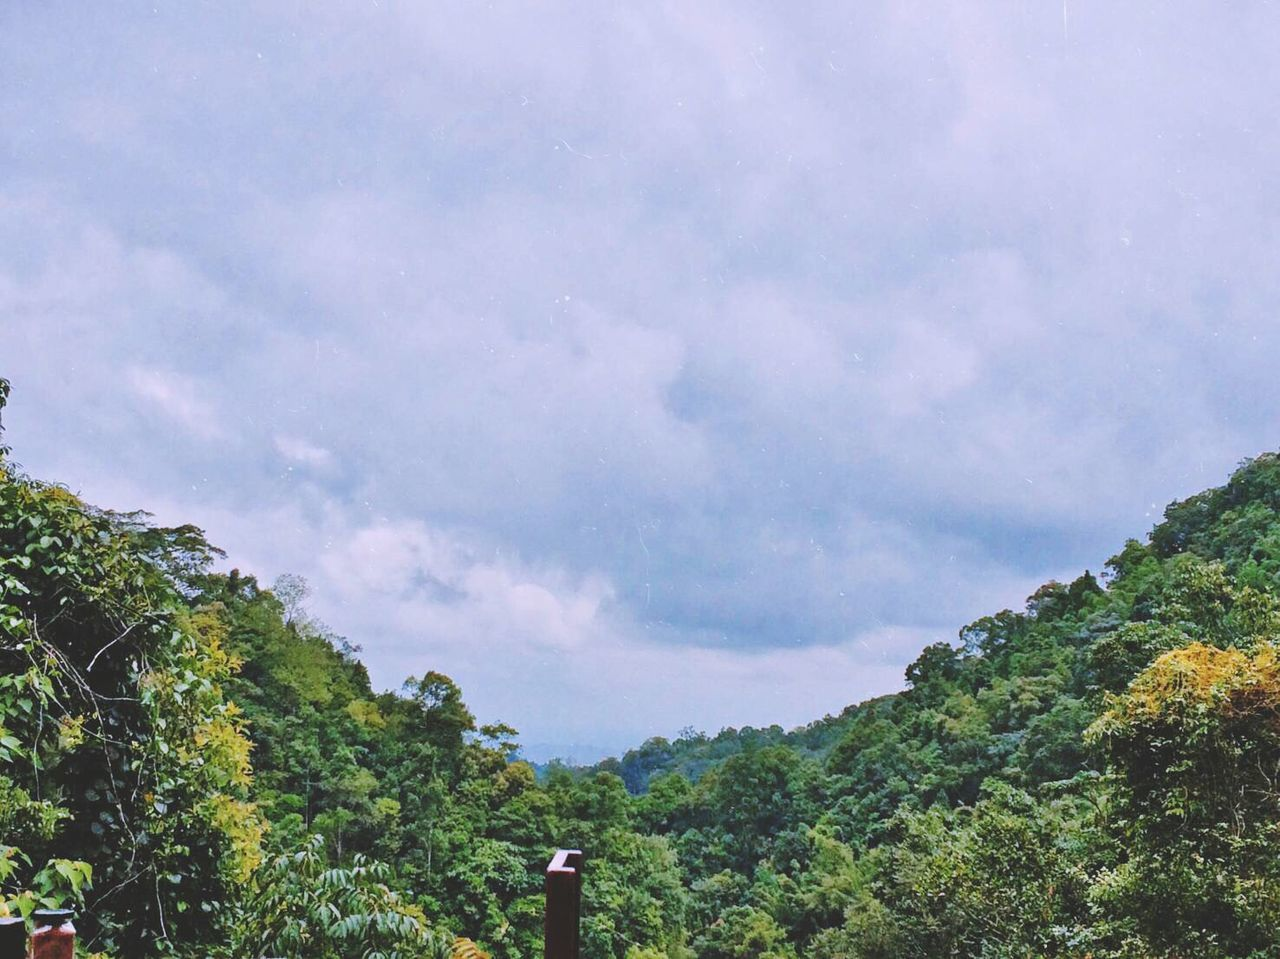 Changmai ChangmaiThailand Maekampong Tree Green Forest Sky Cloud Sky And Clouds Photo By Iphone5s Thailand Thailandtravel